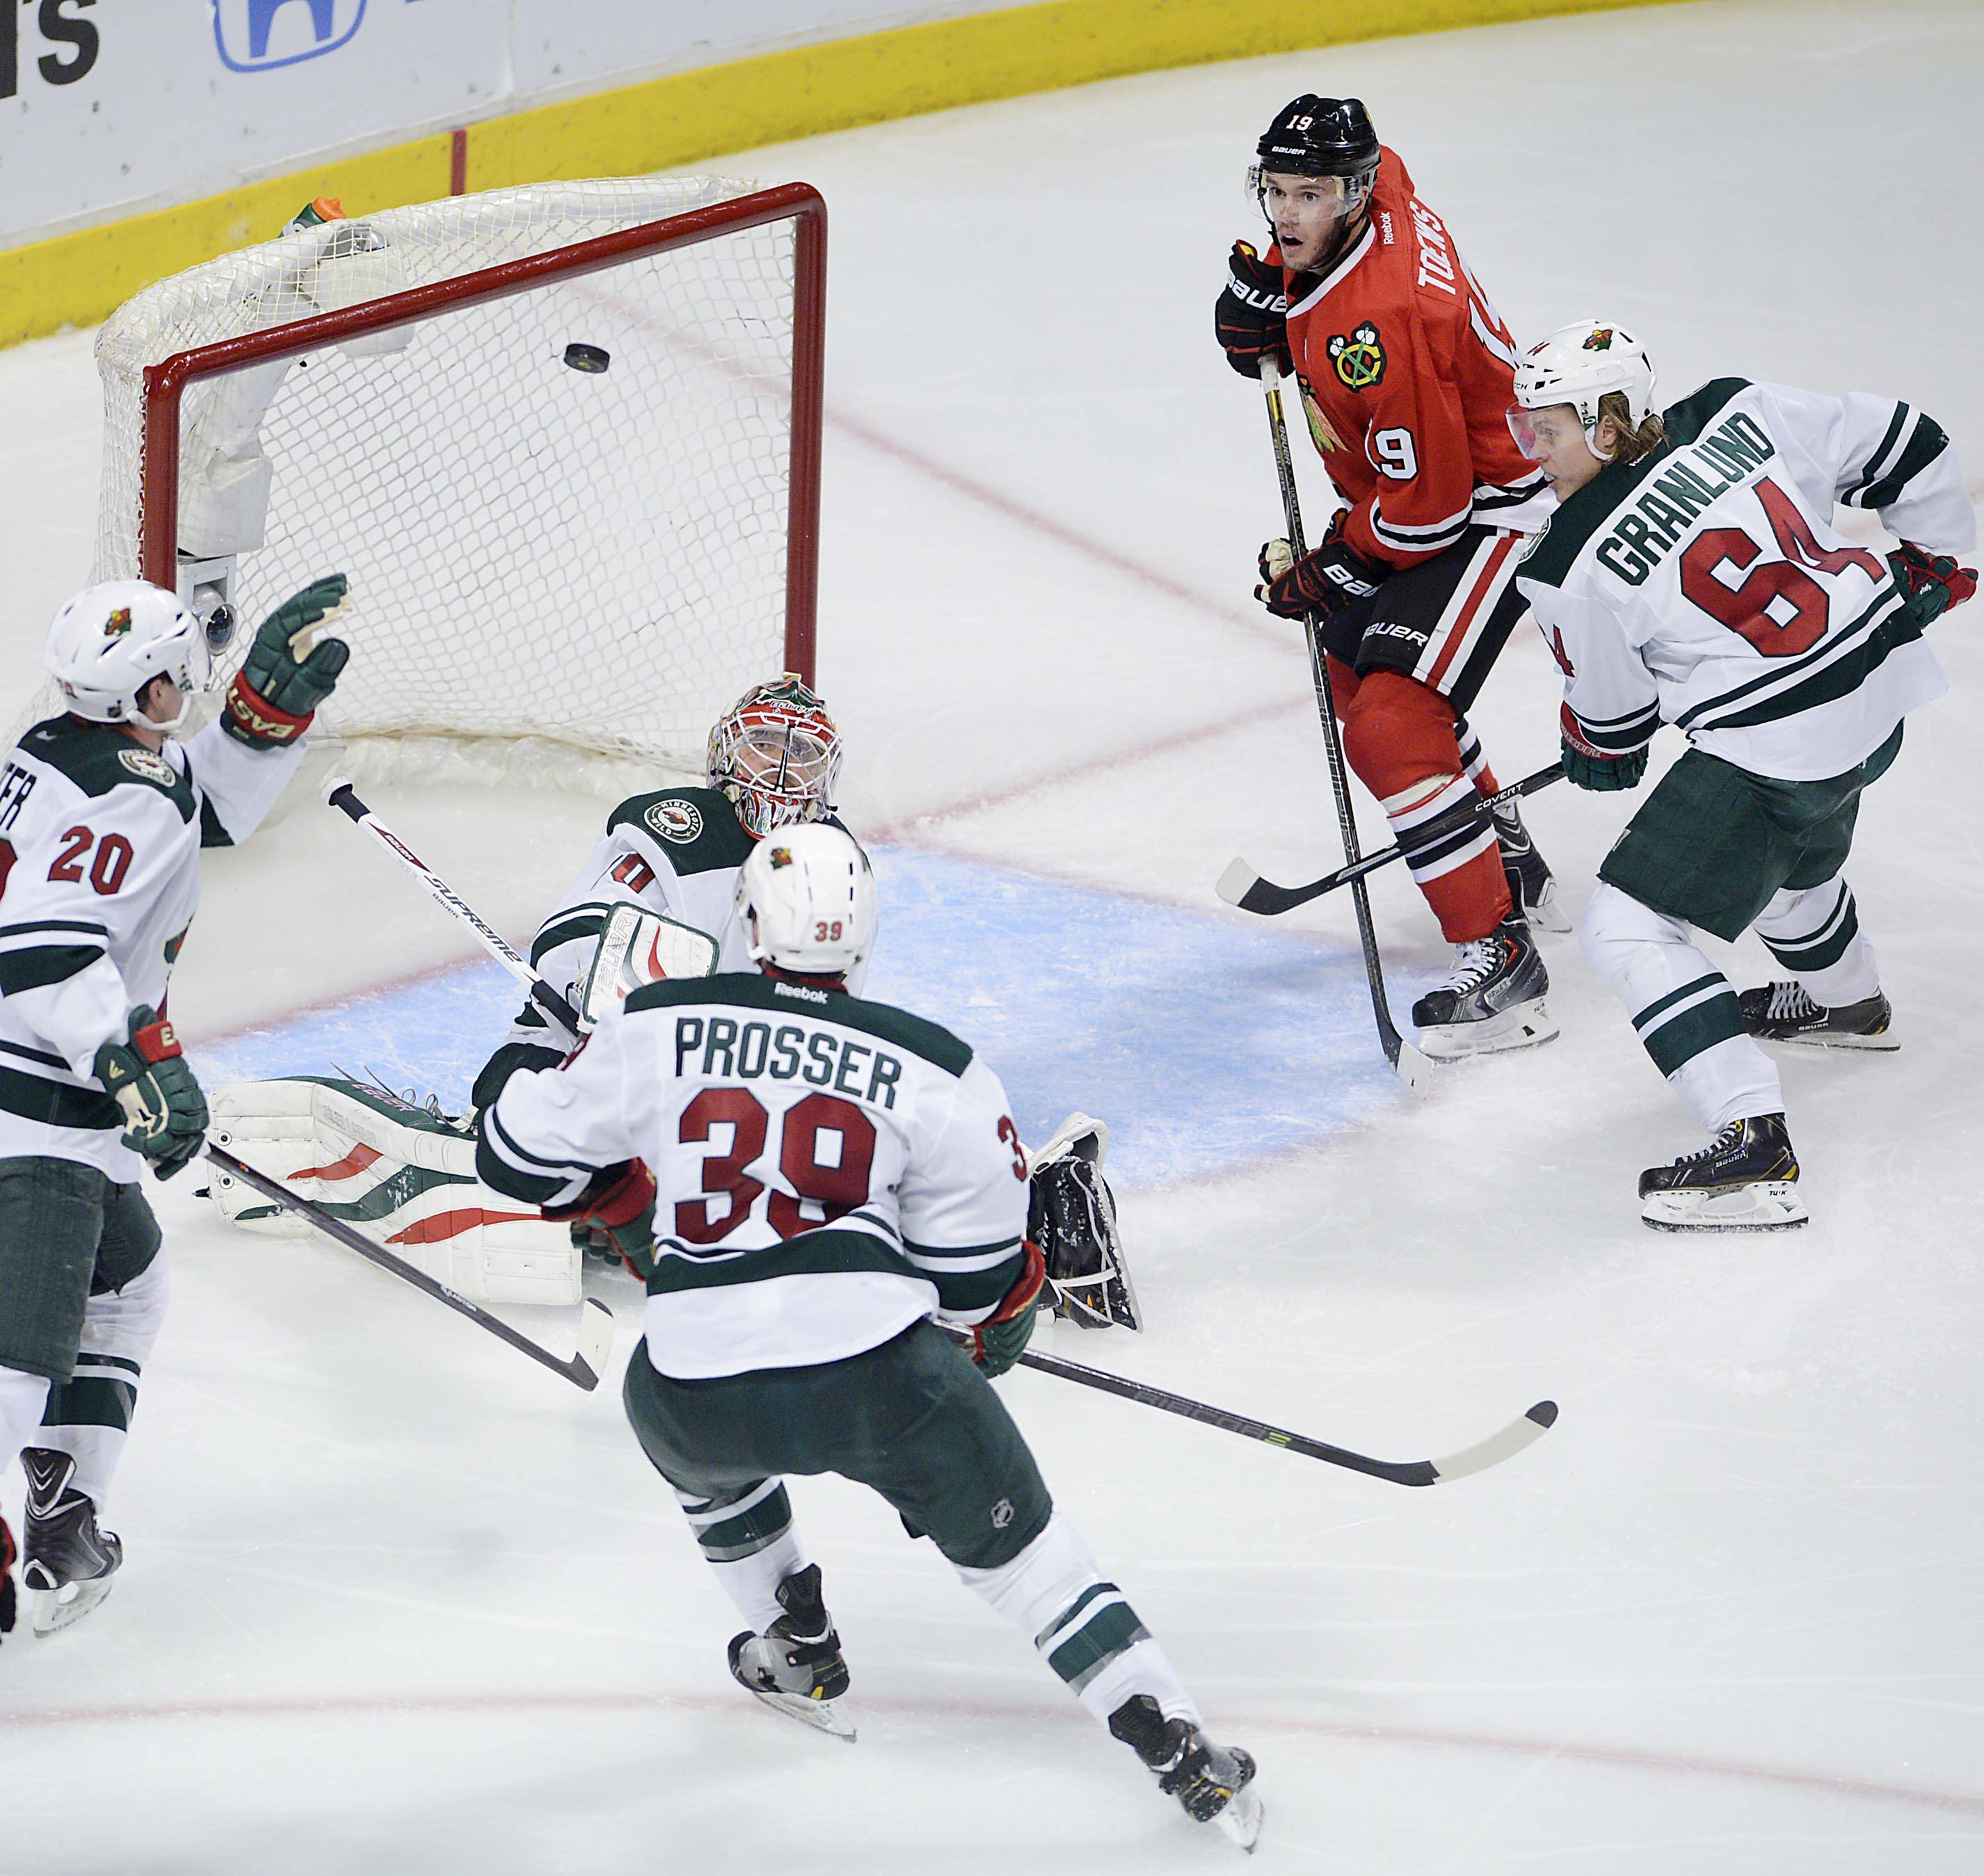 Chicago Blackhawks center Jonathan Toews and Minnesota Wild's Ryan Suter, Nate Prosser, Mikael Granlund and goalie Ilya Bryzgalov watch the puck bounce high in front of the net. Toews eventually scored on the play.